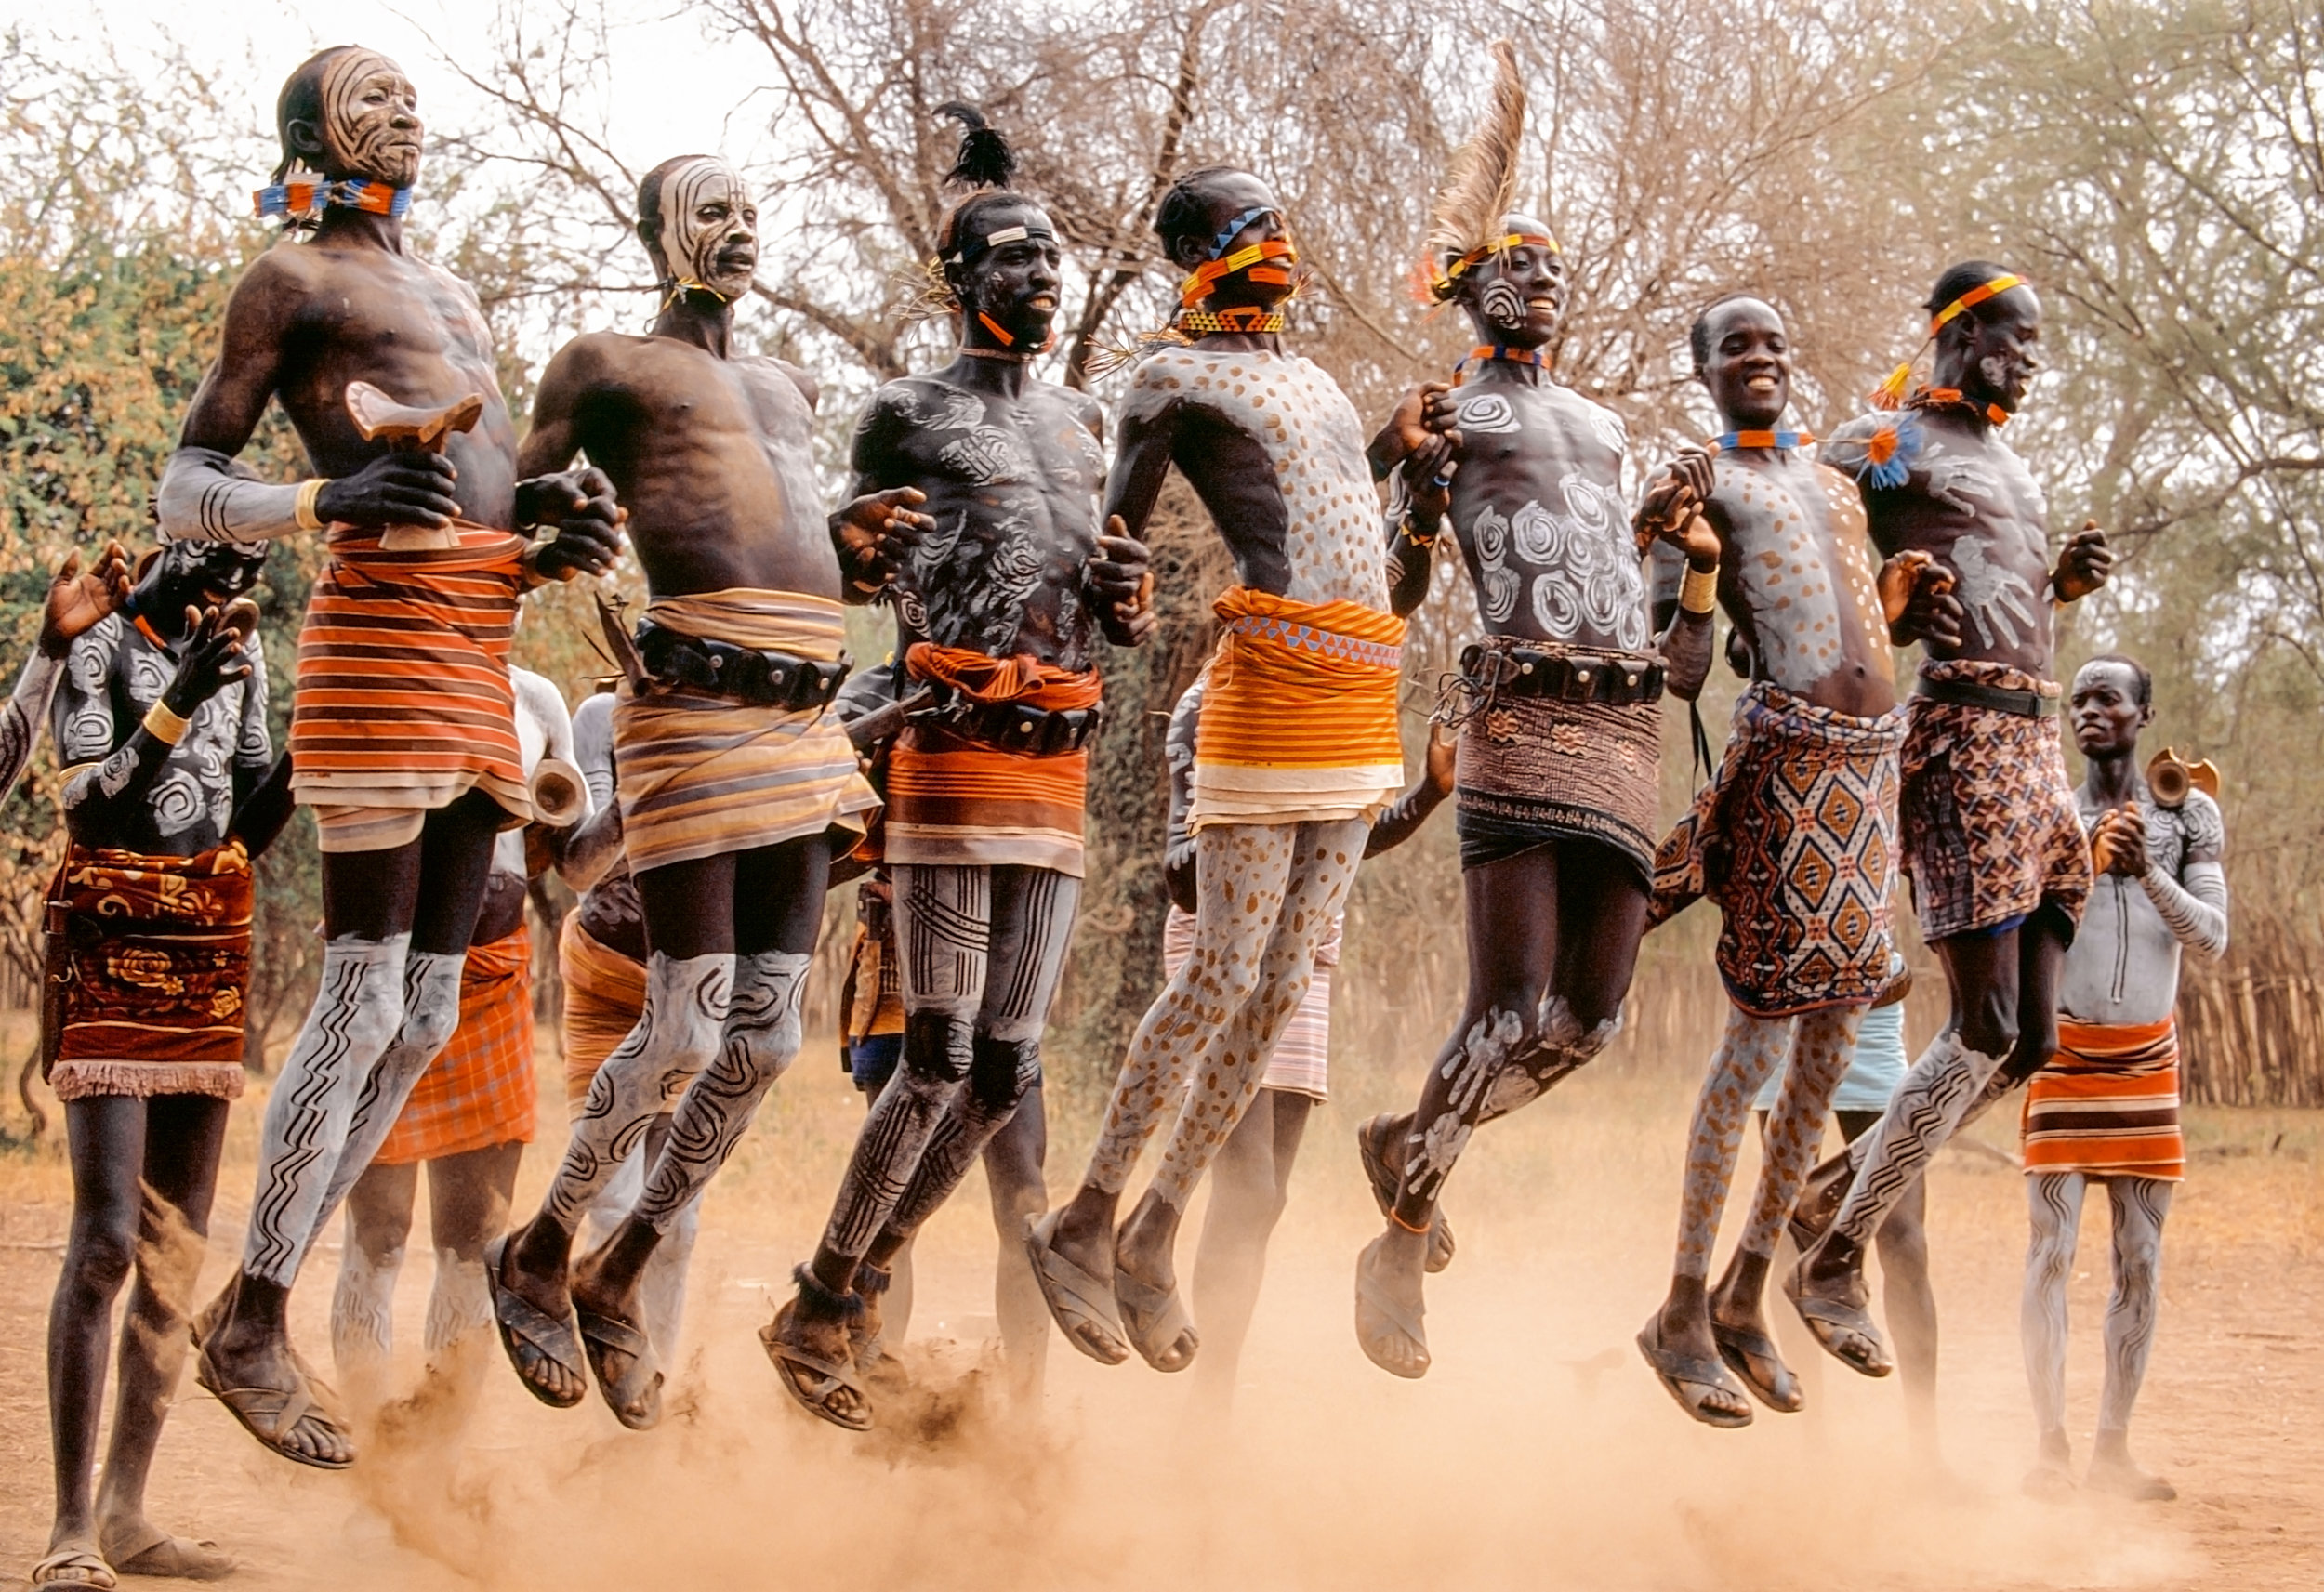 Performing the courtship dance, young Kara men form long lines and leap high in the air to impress the admiring young women. © African Twilight: The Vanishing Cultures and Ceremonies of the African Continent by Carol Beckwith and Angela Fisher, Rizzoli, 2018.